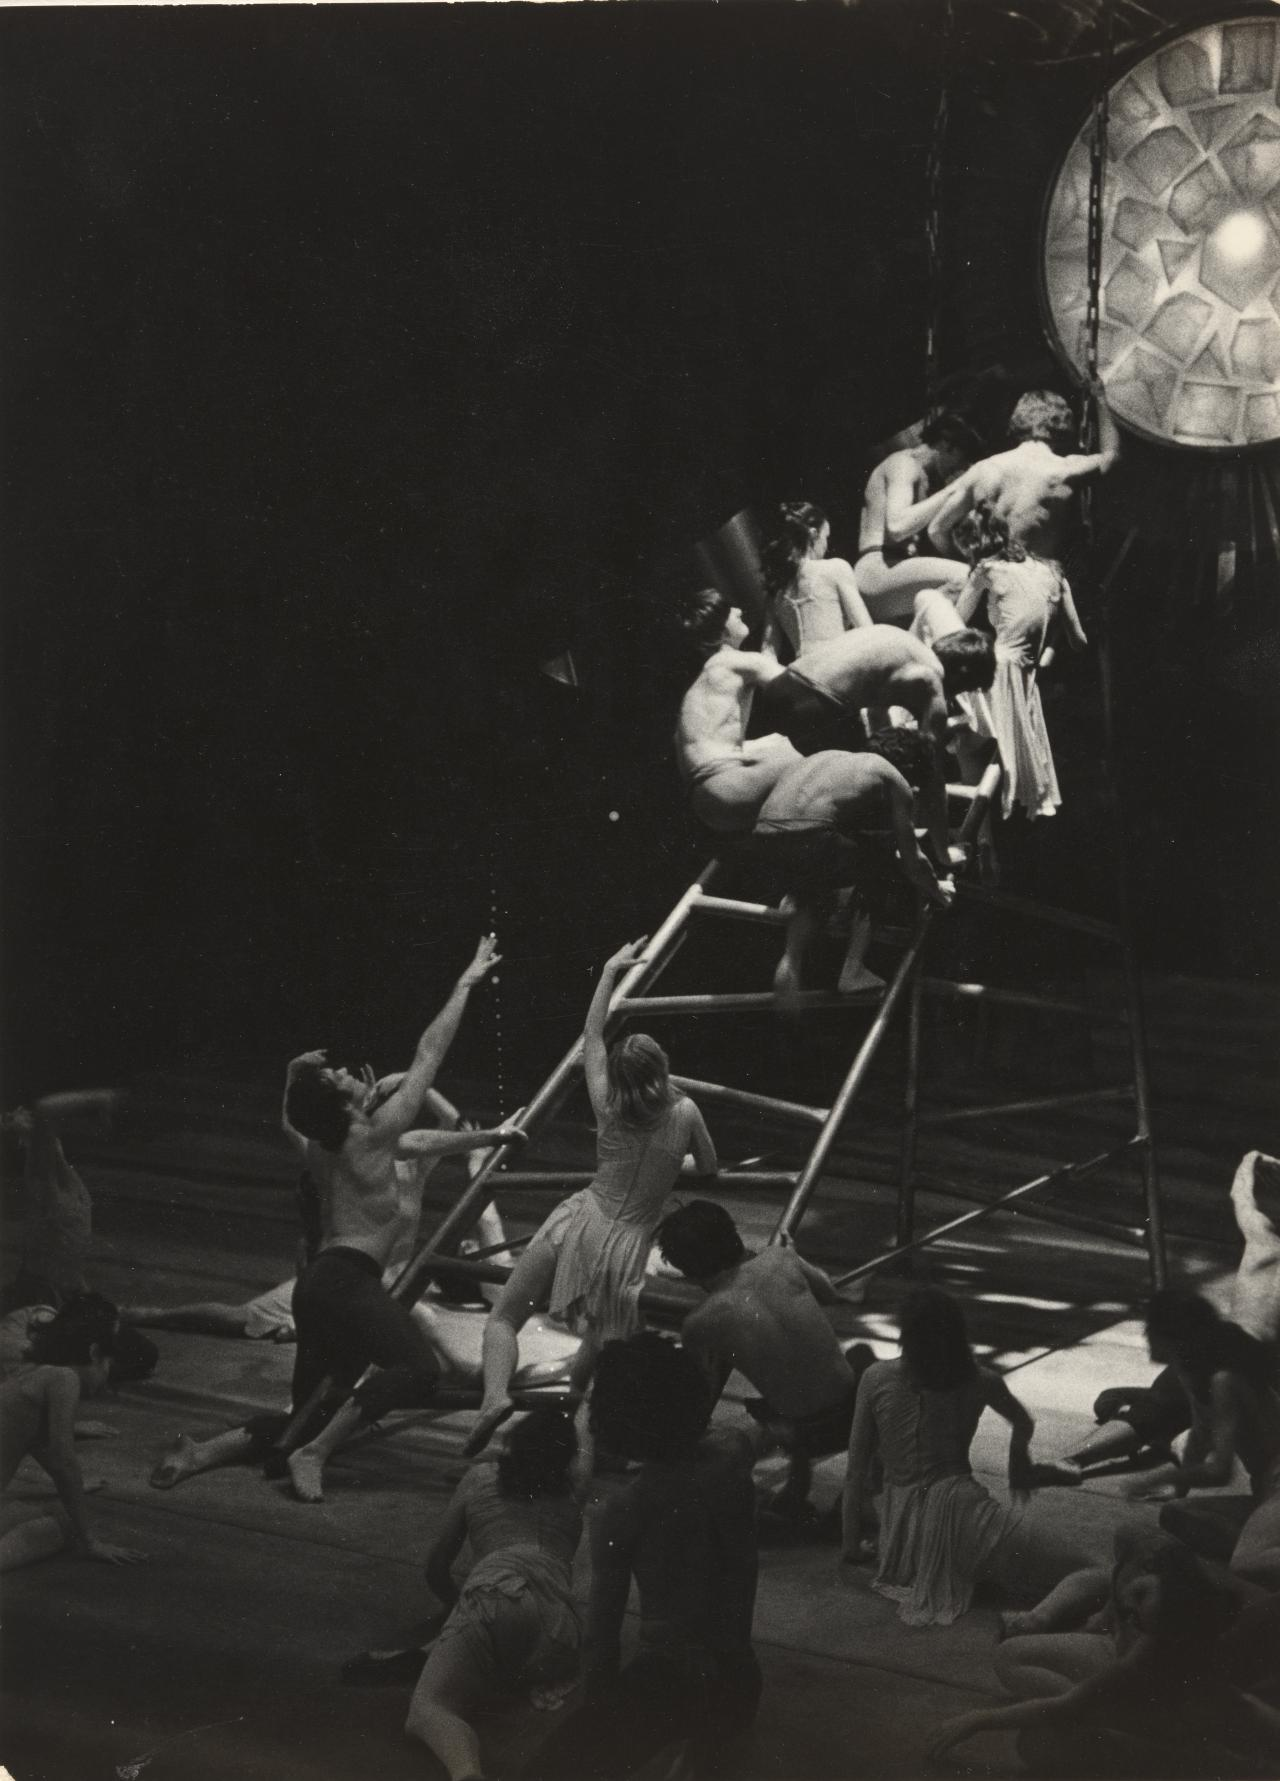 No title (Theatre illustration. Dancers huddled at top of ladder)